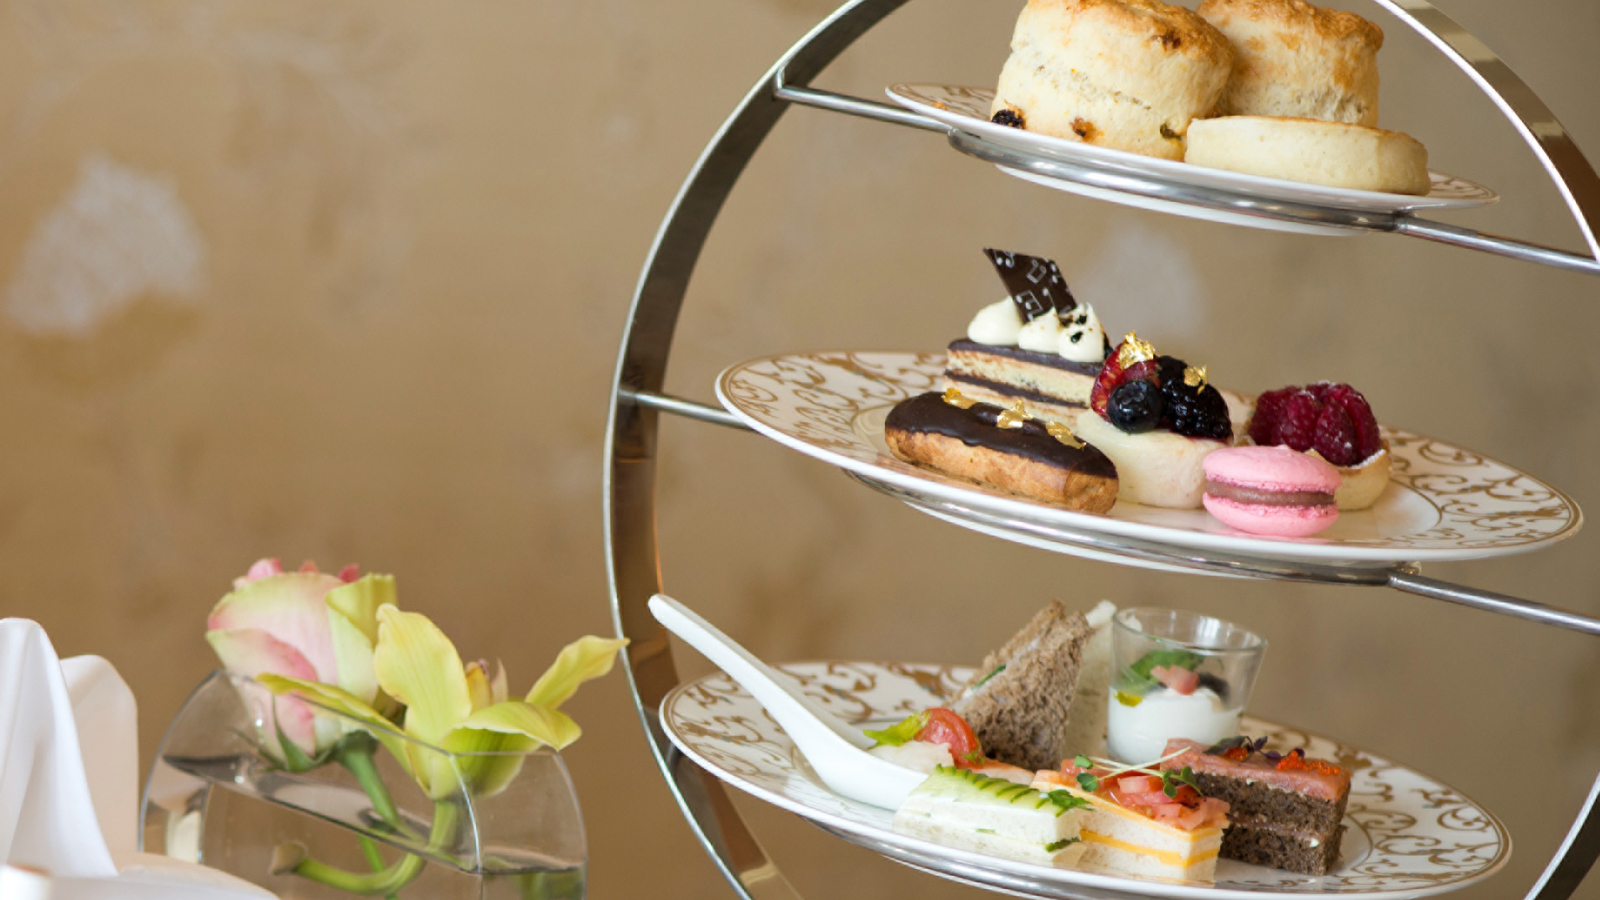 Traditional Afternoon Tea at Seasons Tea Lounge in Doha